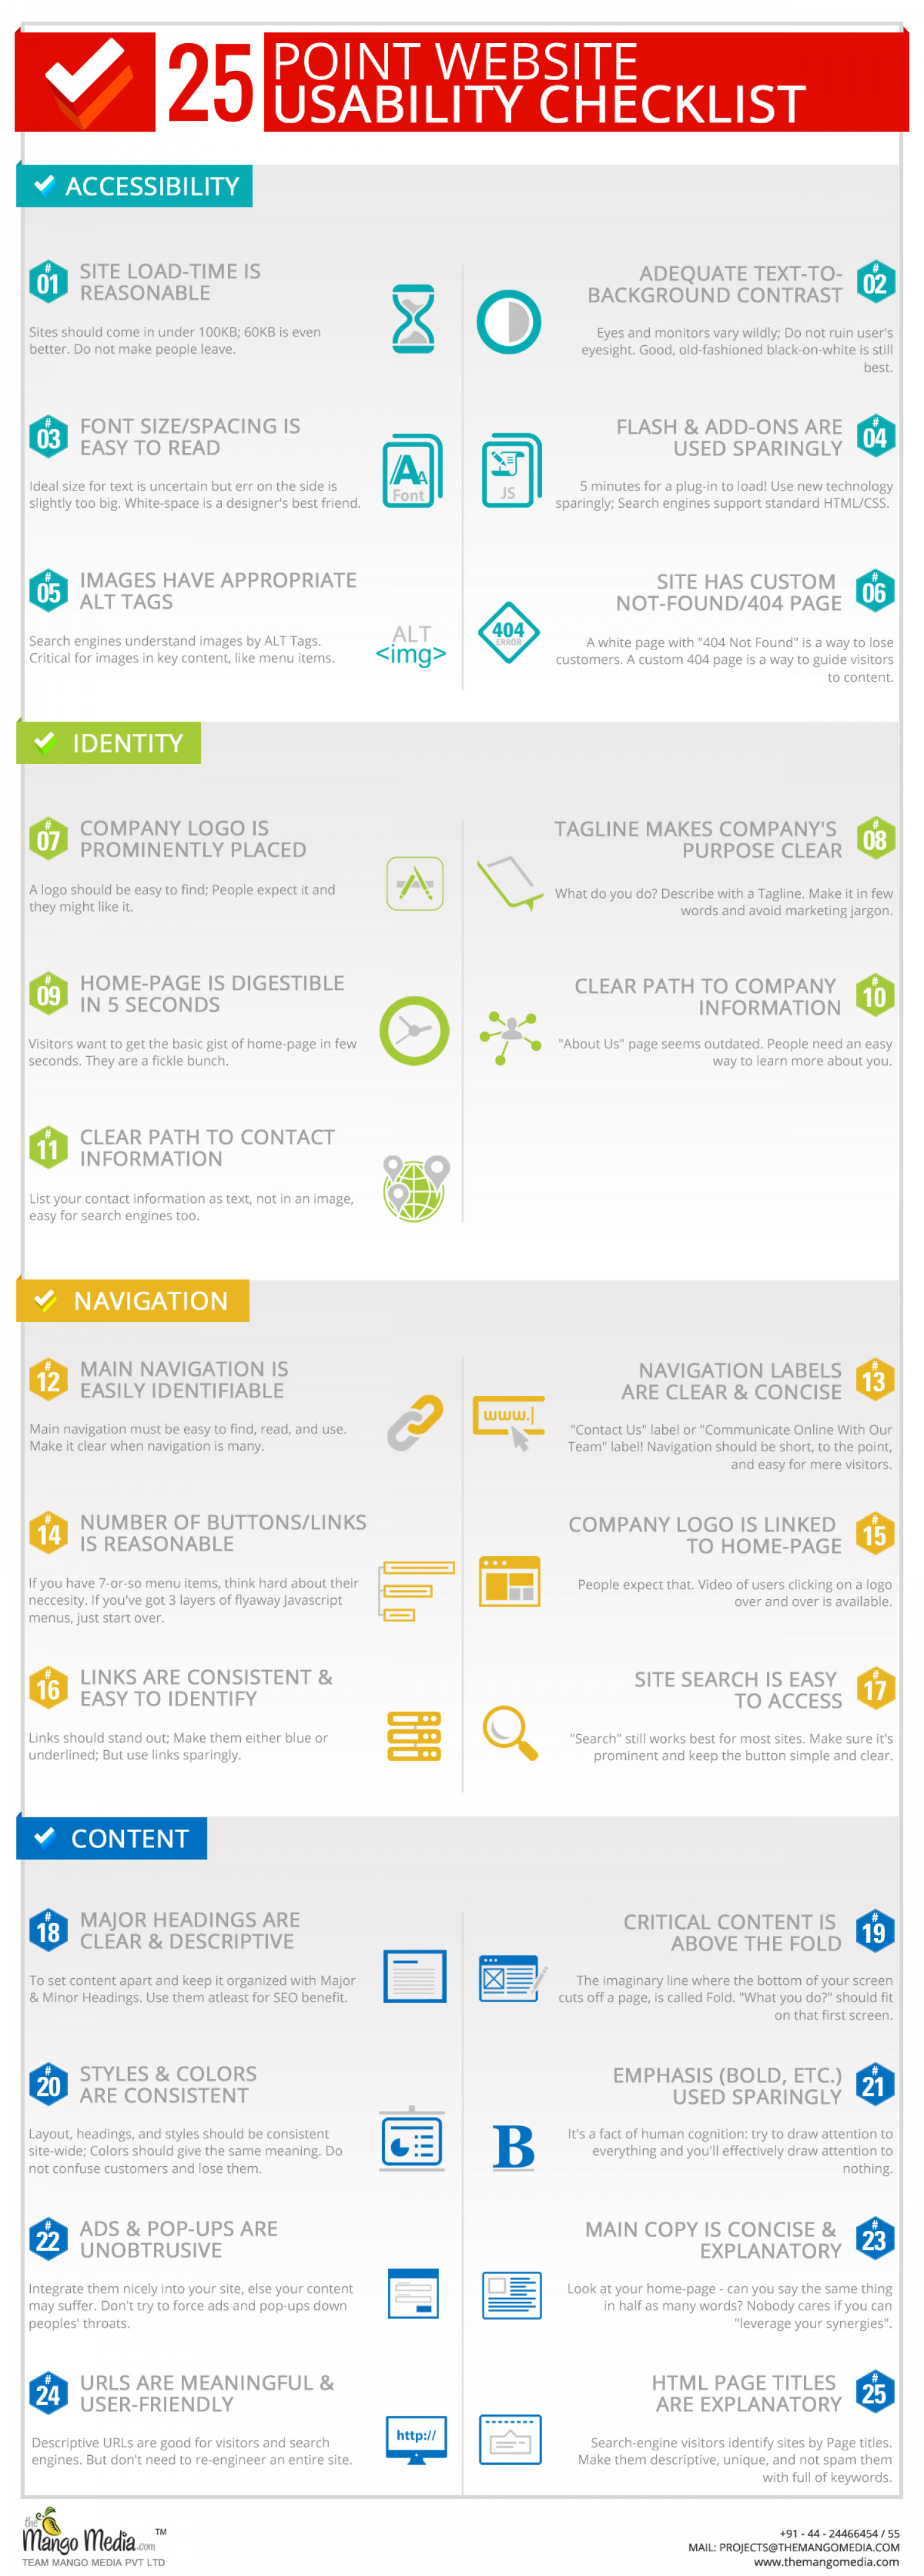 The 25 Website Checklist Factors are not Just Guidelines. Infographic